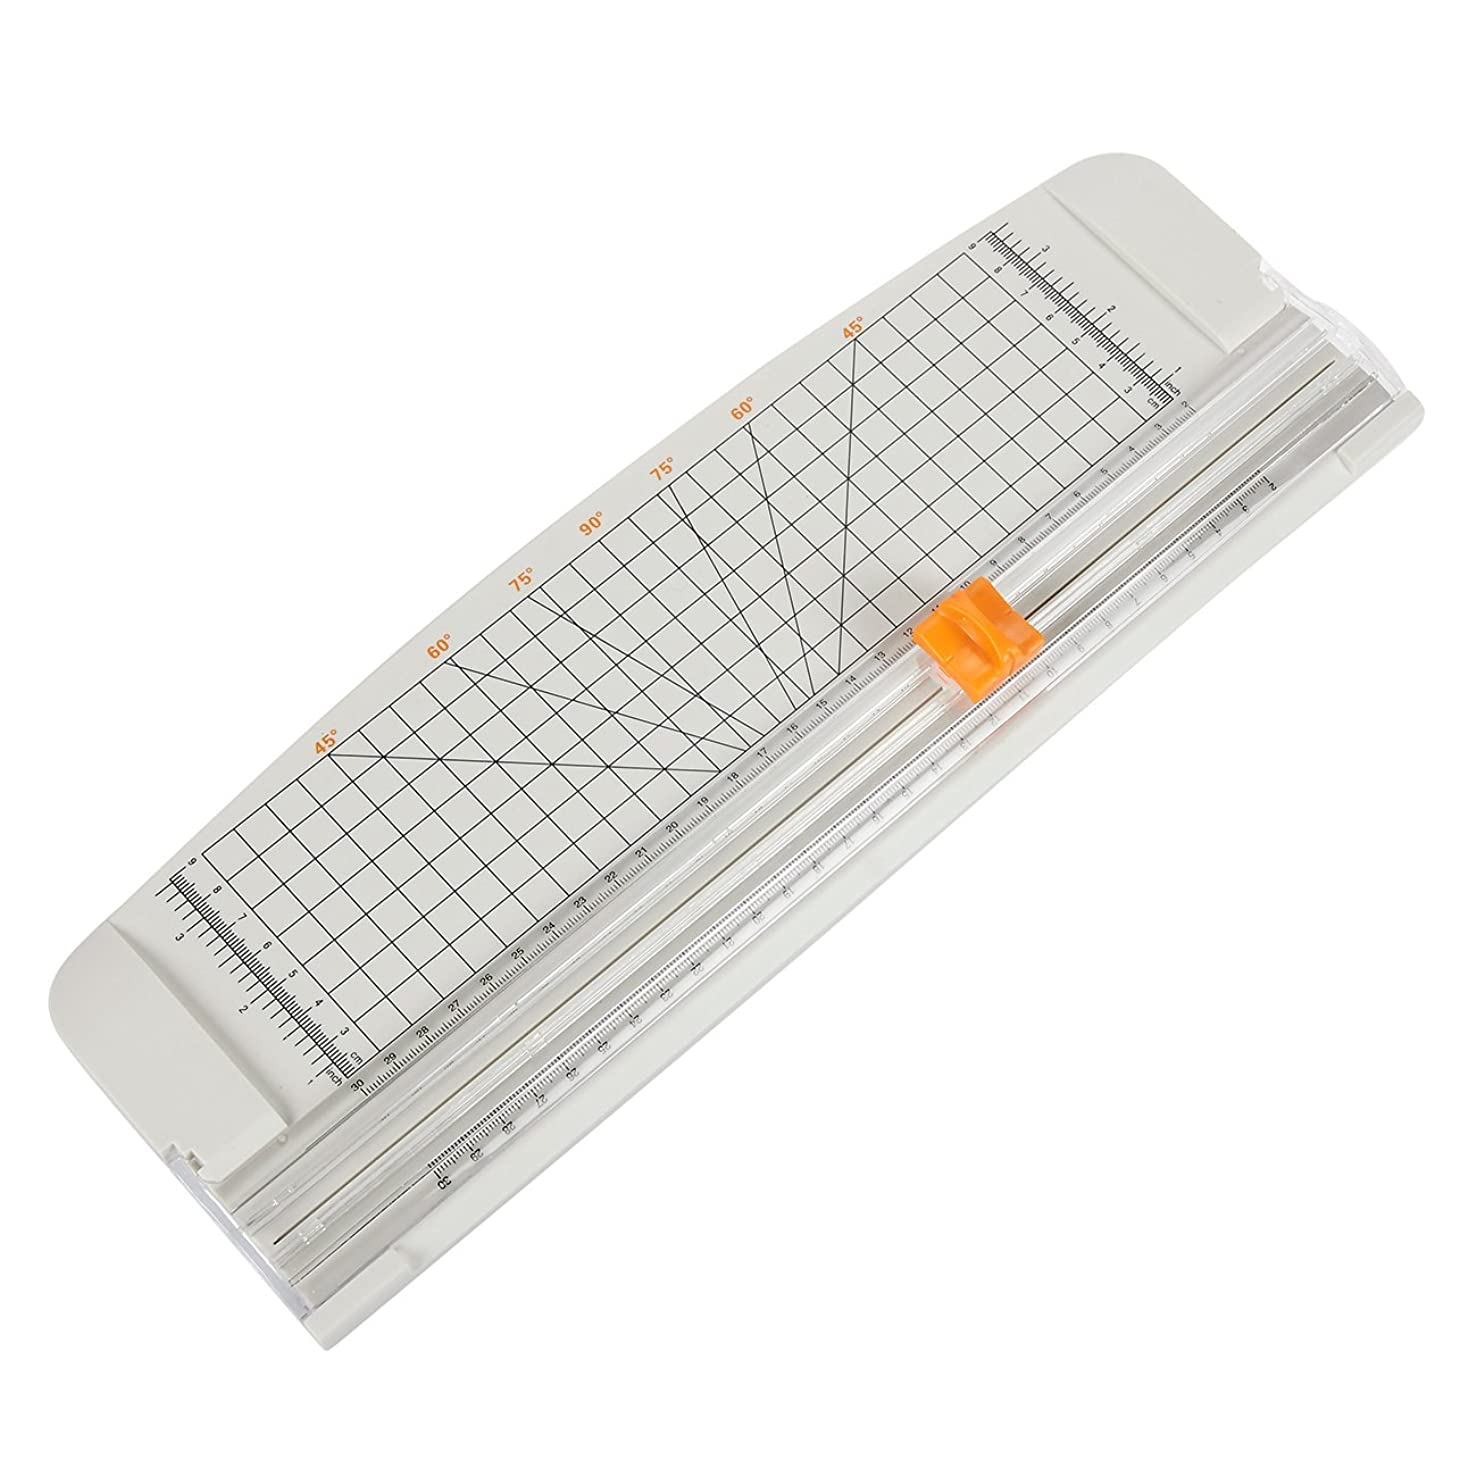 Paper Trimmer/Paper Cutter - Paper Cutting Board with Grid Guide - for Scrapbooking, Picture Cutting, Label Design, Coupon Cutting - Grey, 14.75 x 5.1 inches